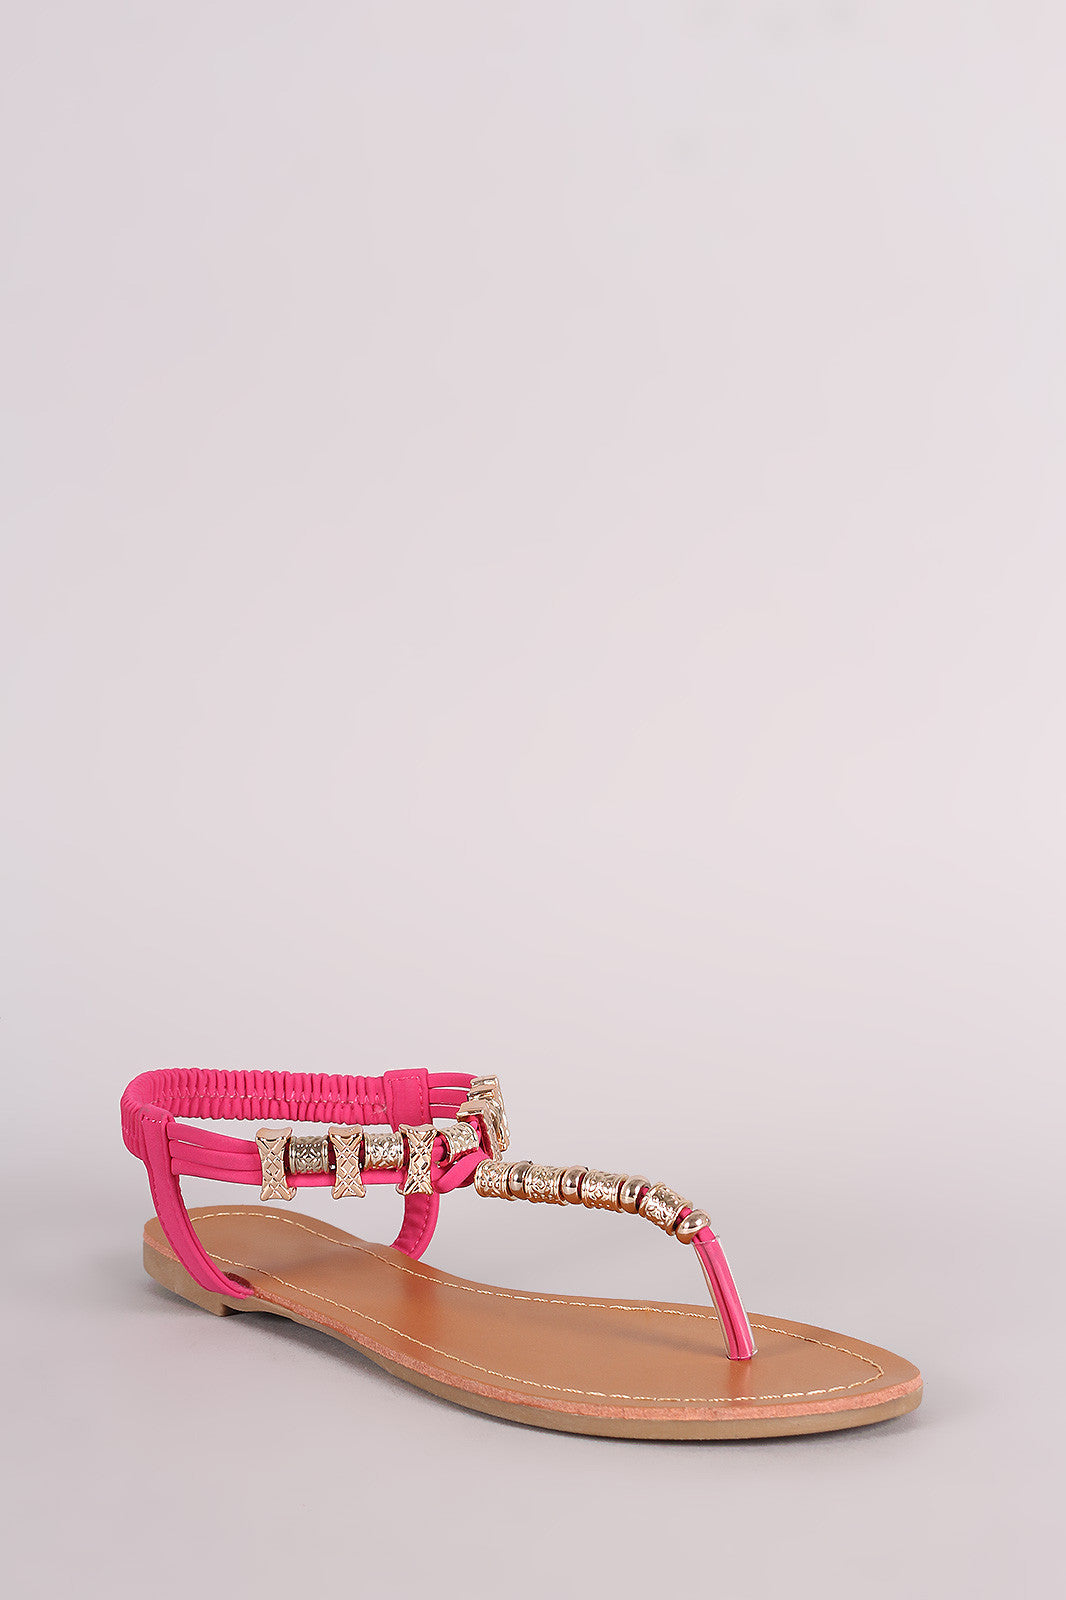 Metallic Ornament Embellished T-Strap Flat Sandal - Thick 'N' Curvy Shop - 2